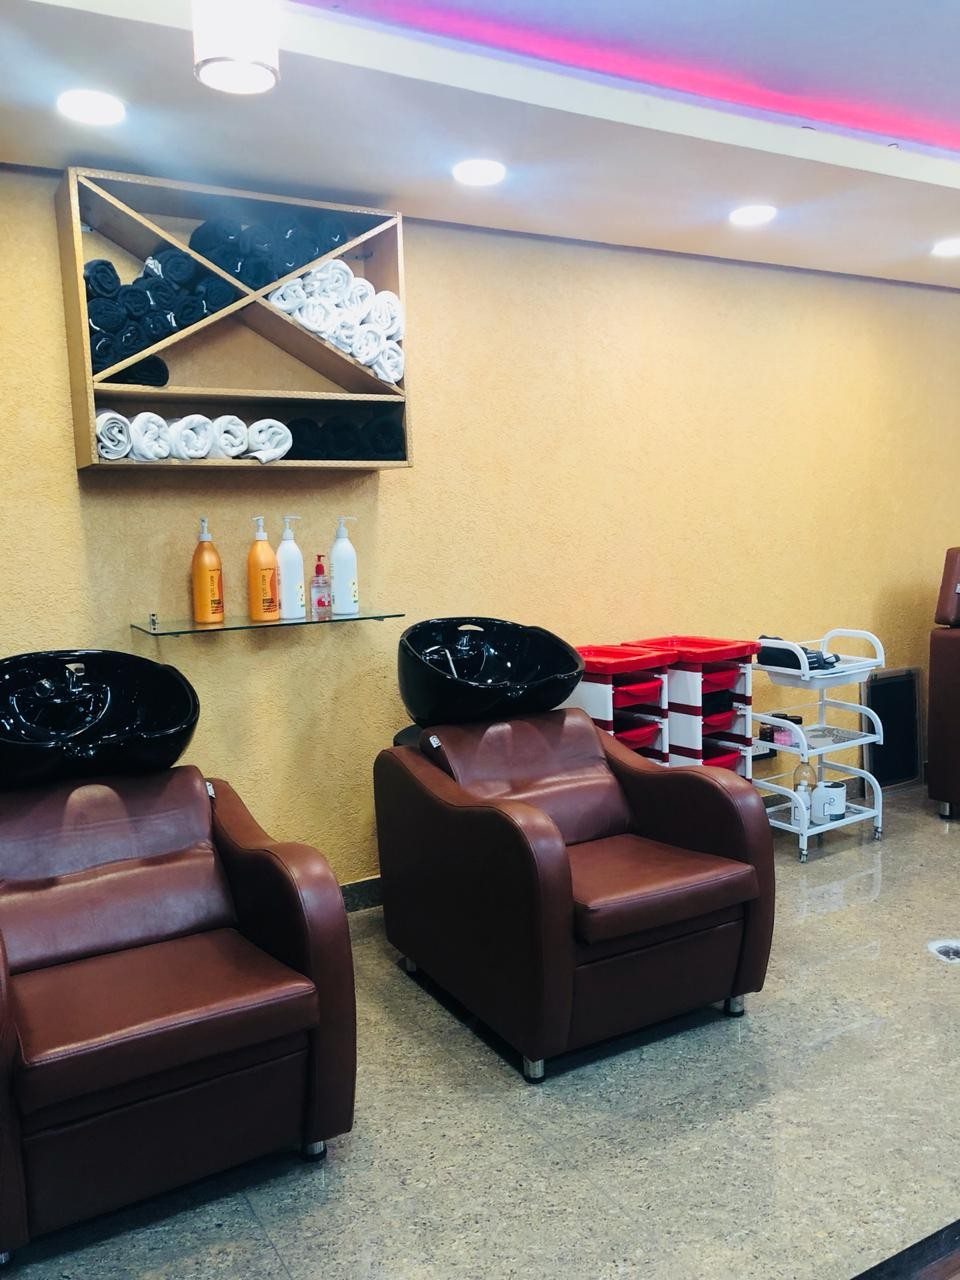 Cuticle Hair Mafia Salon Mohali - Get Full Arms and Underarms Wax and Half Legs Wax in Rs 149 Only